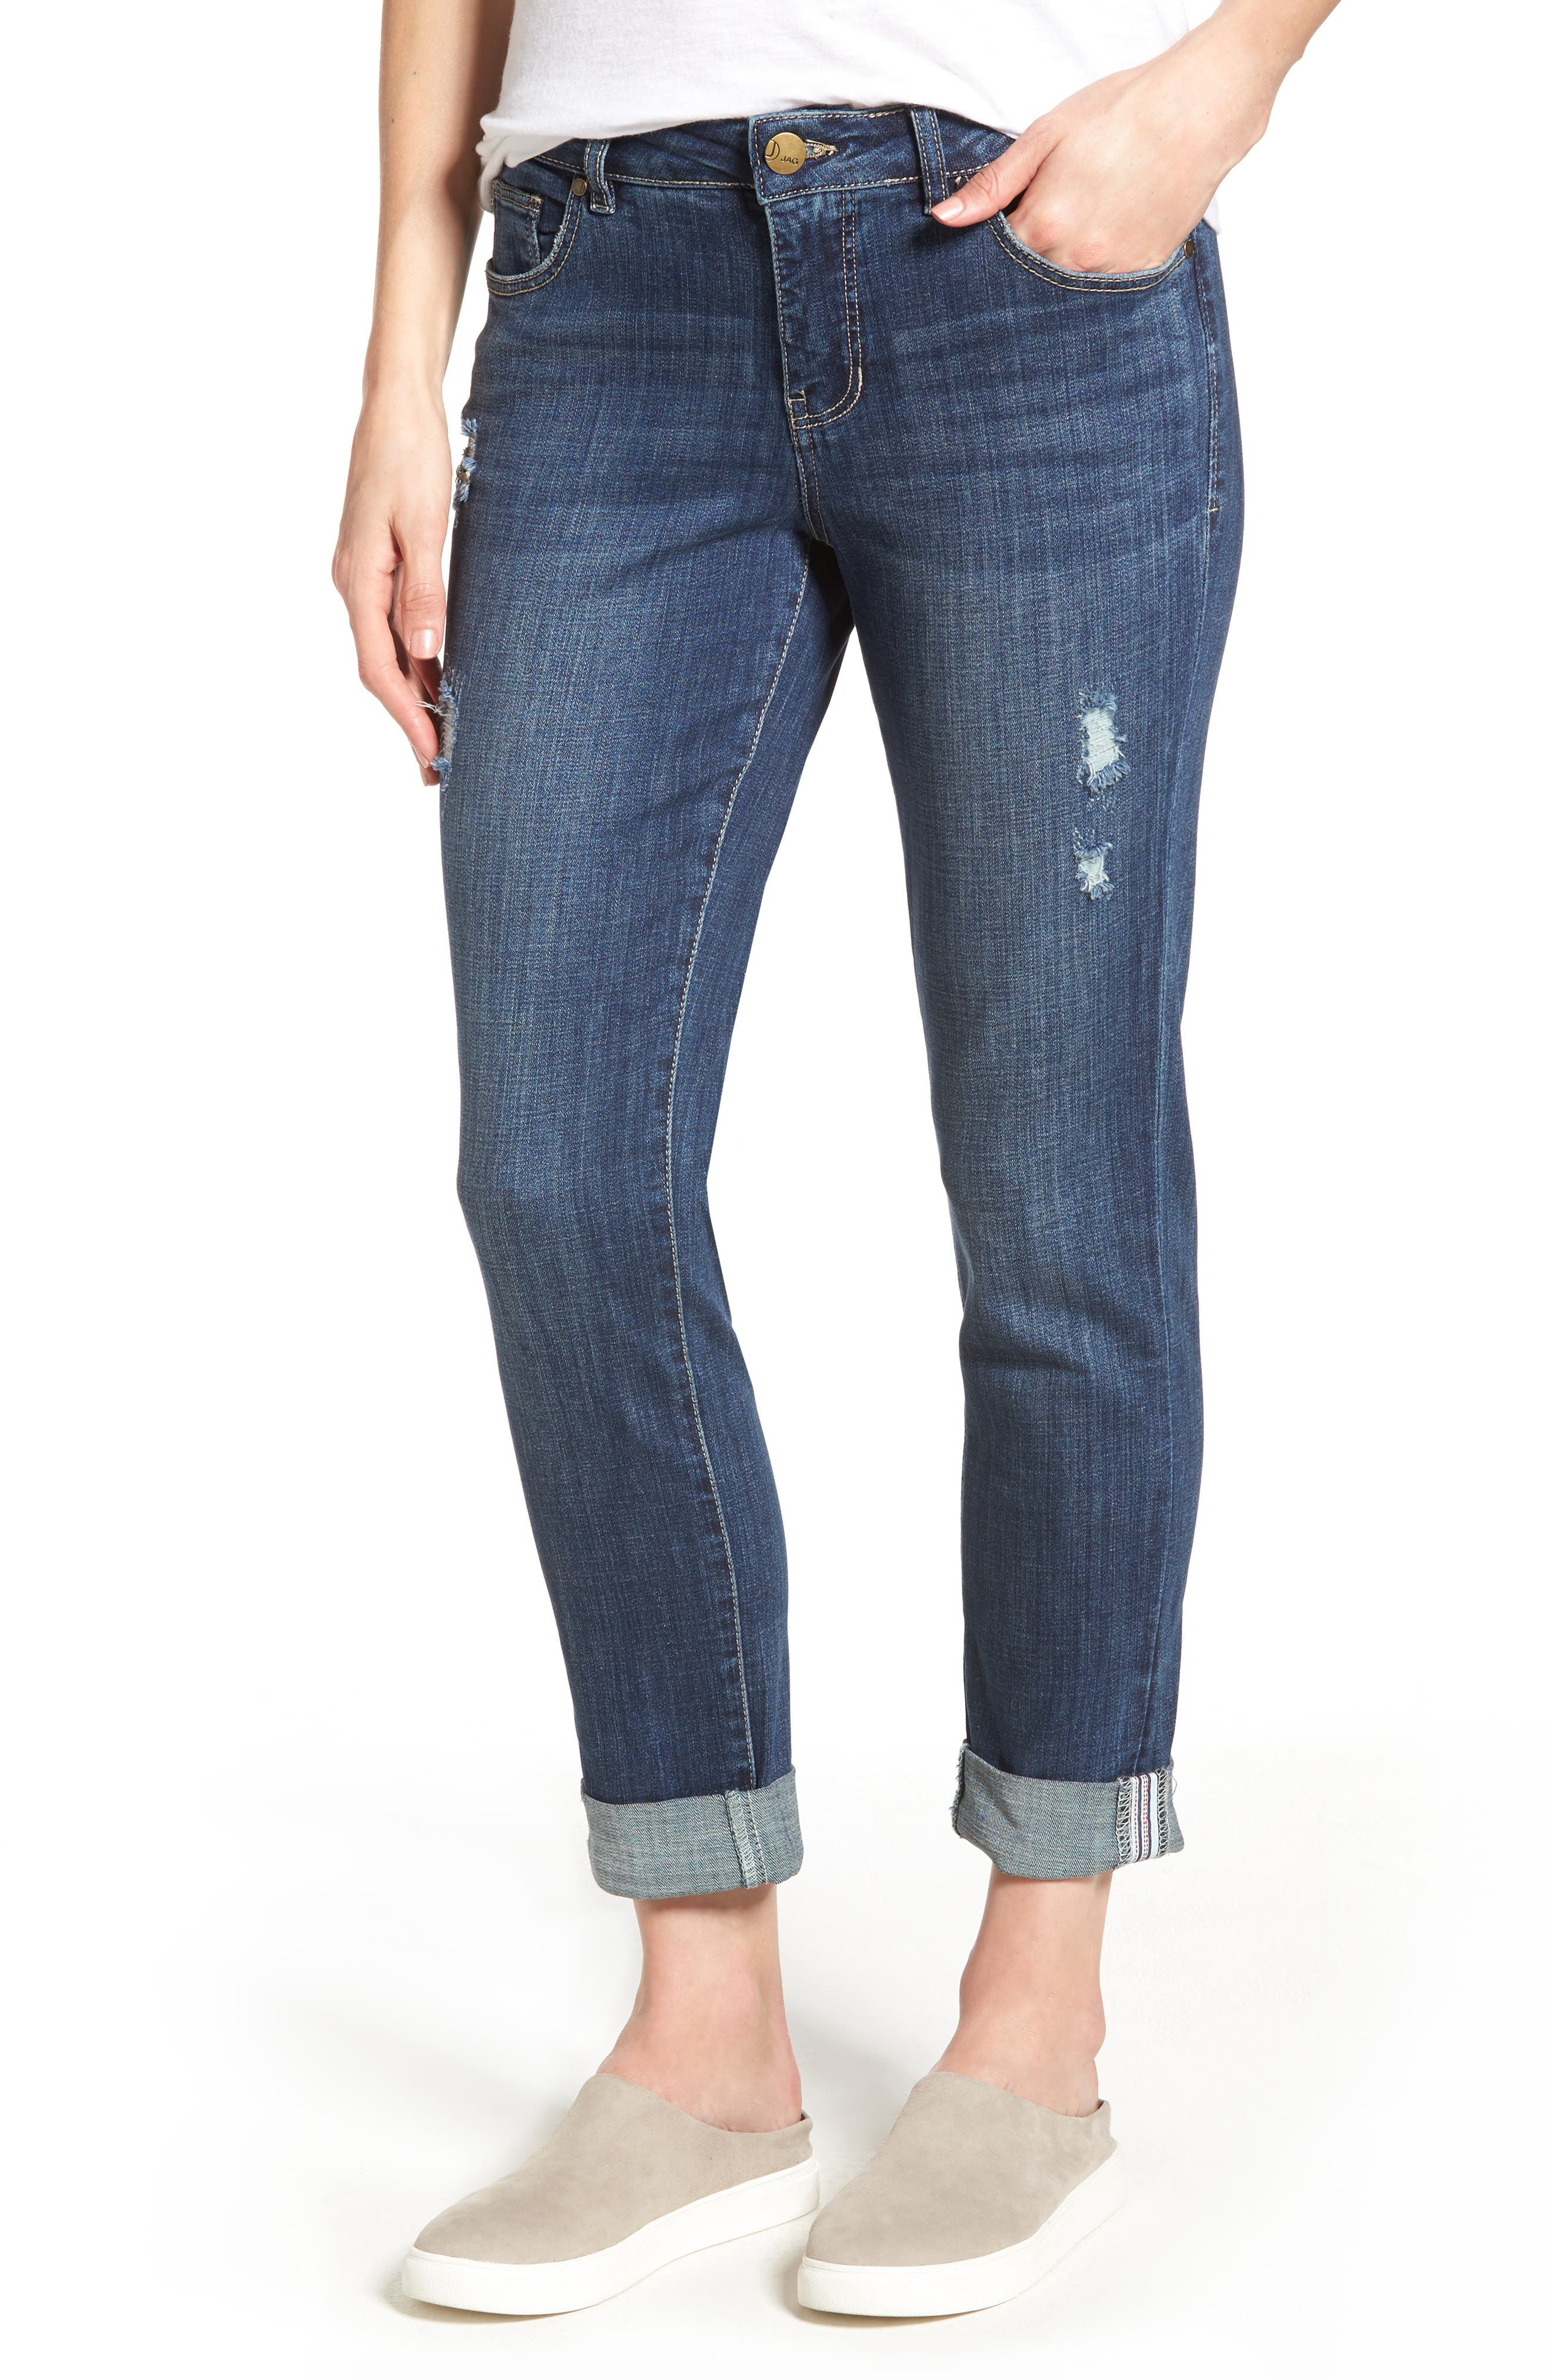 Alternate Image 1 Selected - Jag Jeans Carter Cuffed Stretch Girlfriend Jeans